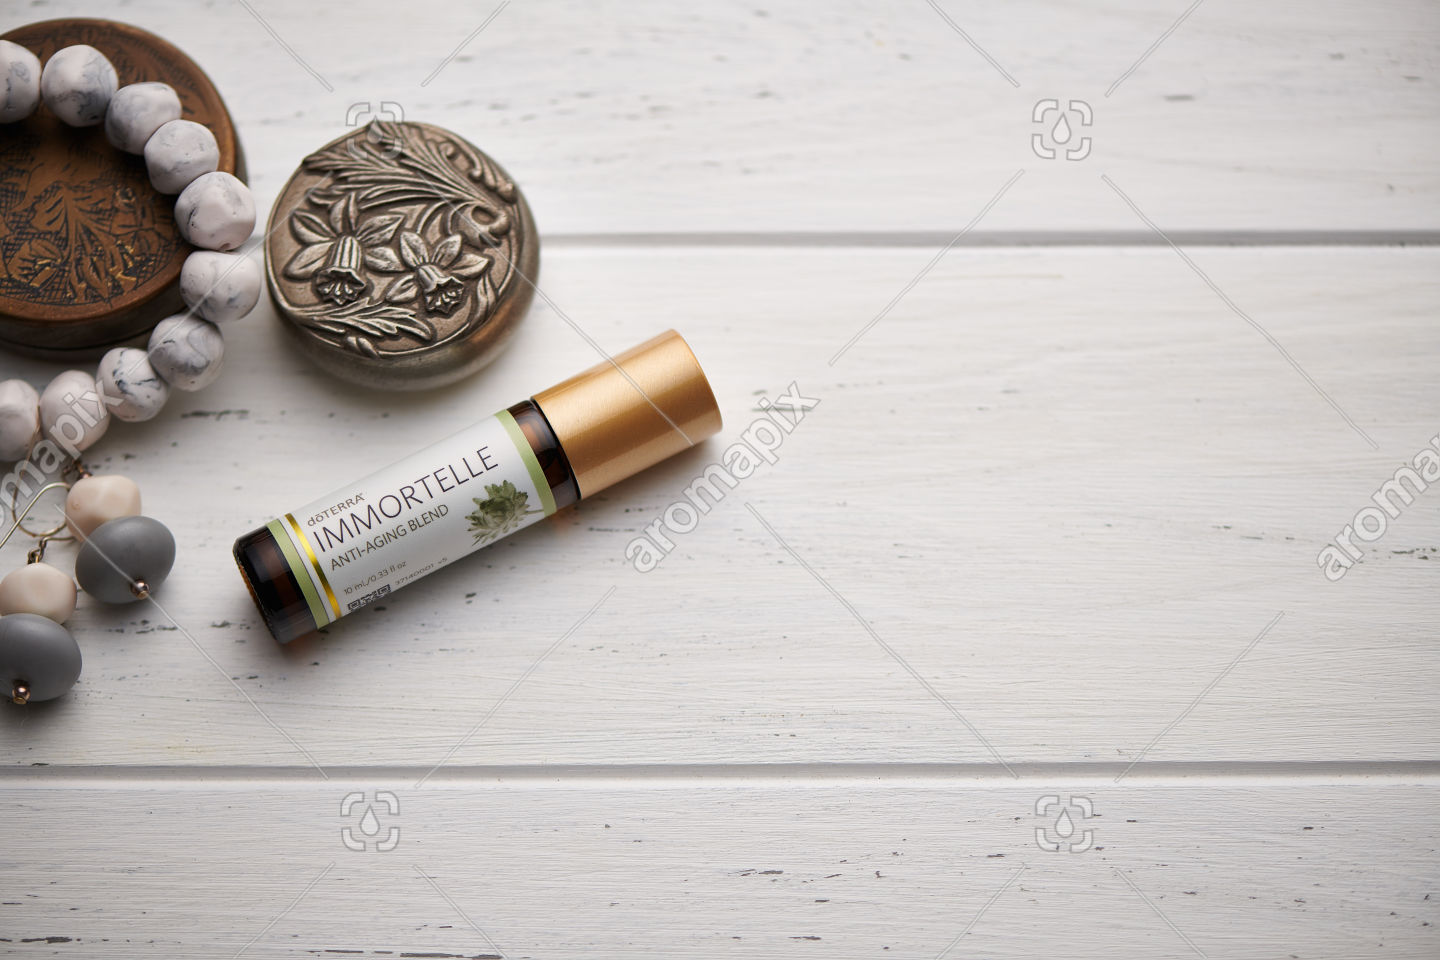 doTERRA Immortelle on rustic background